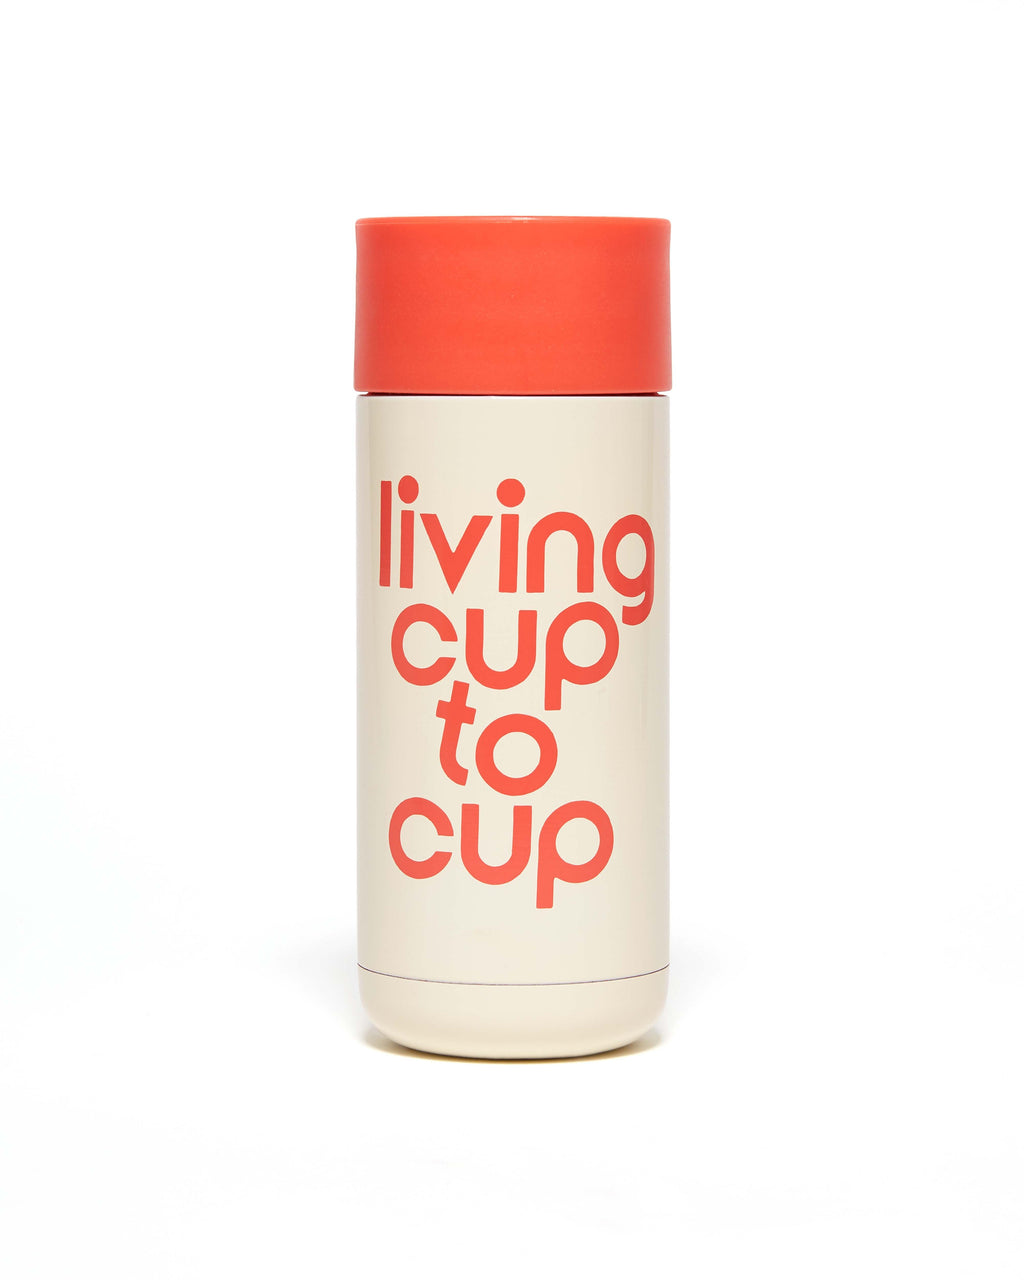 Living Cup to Cup Stainless Steel Thermal Mug - Bando by Ban.do - COMMON DEAR